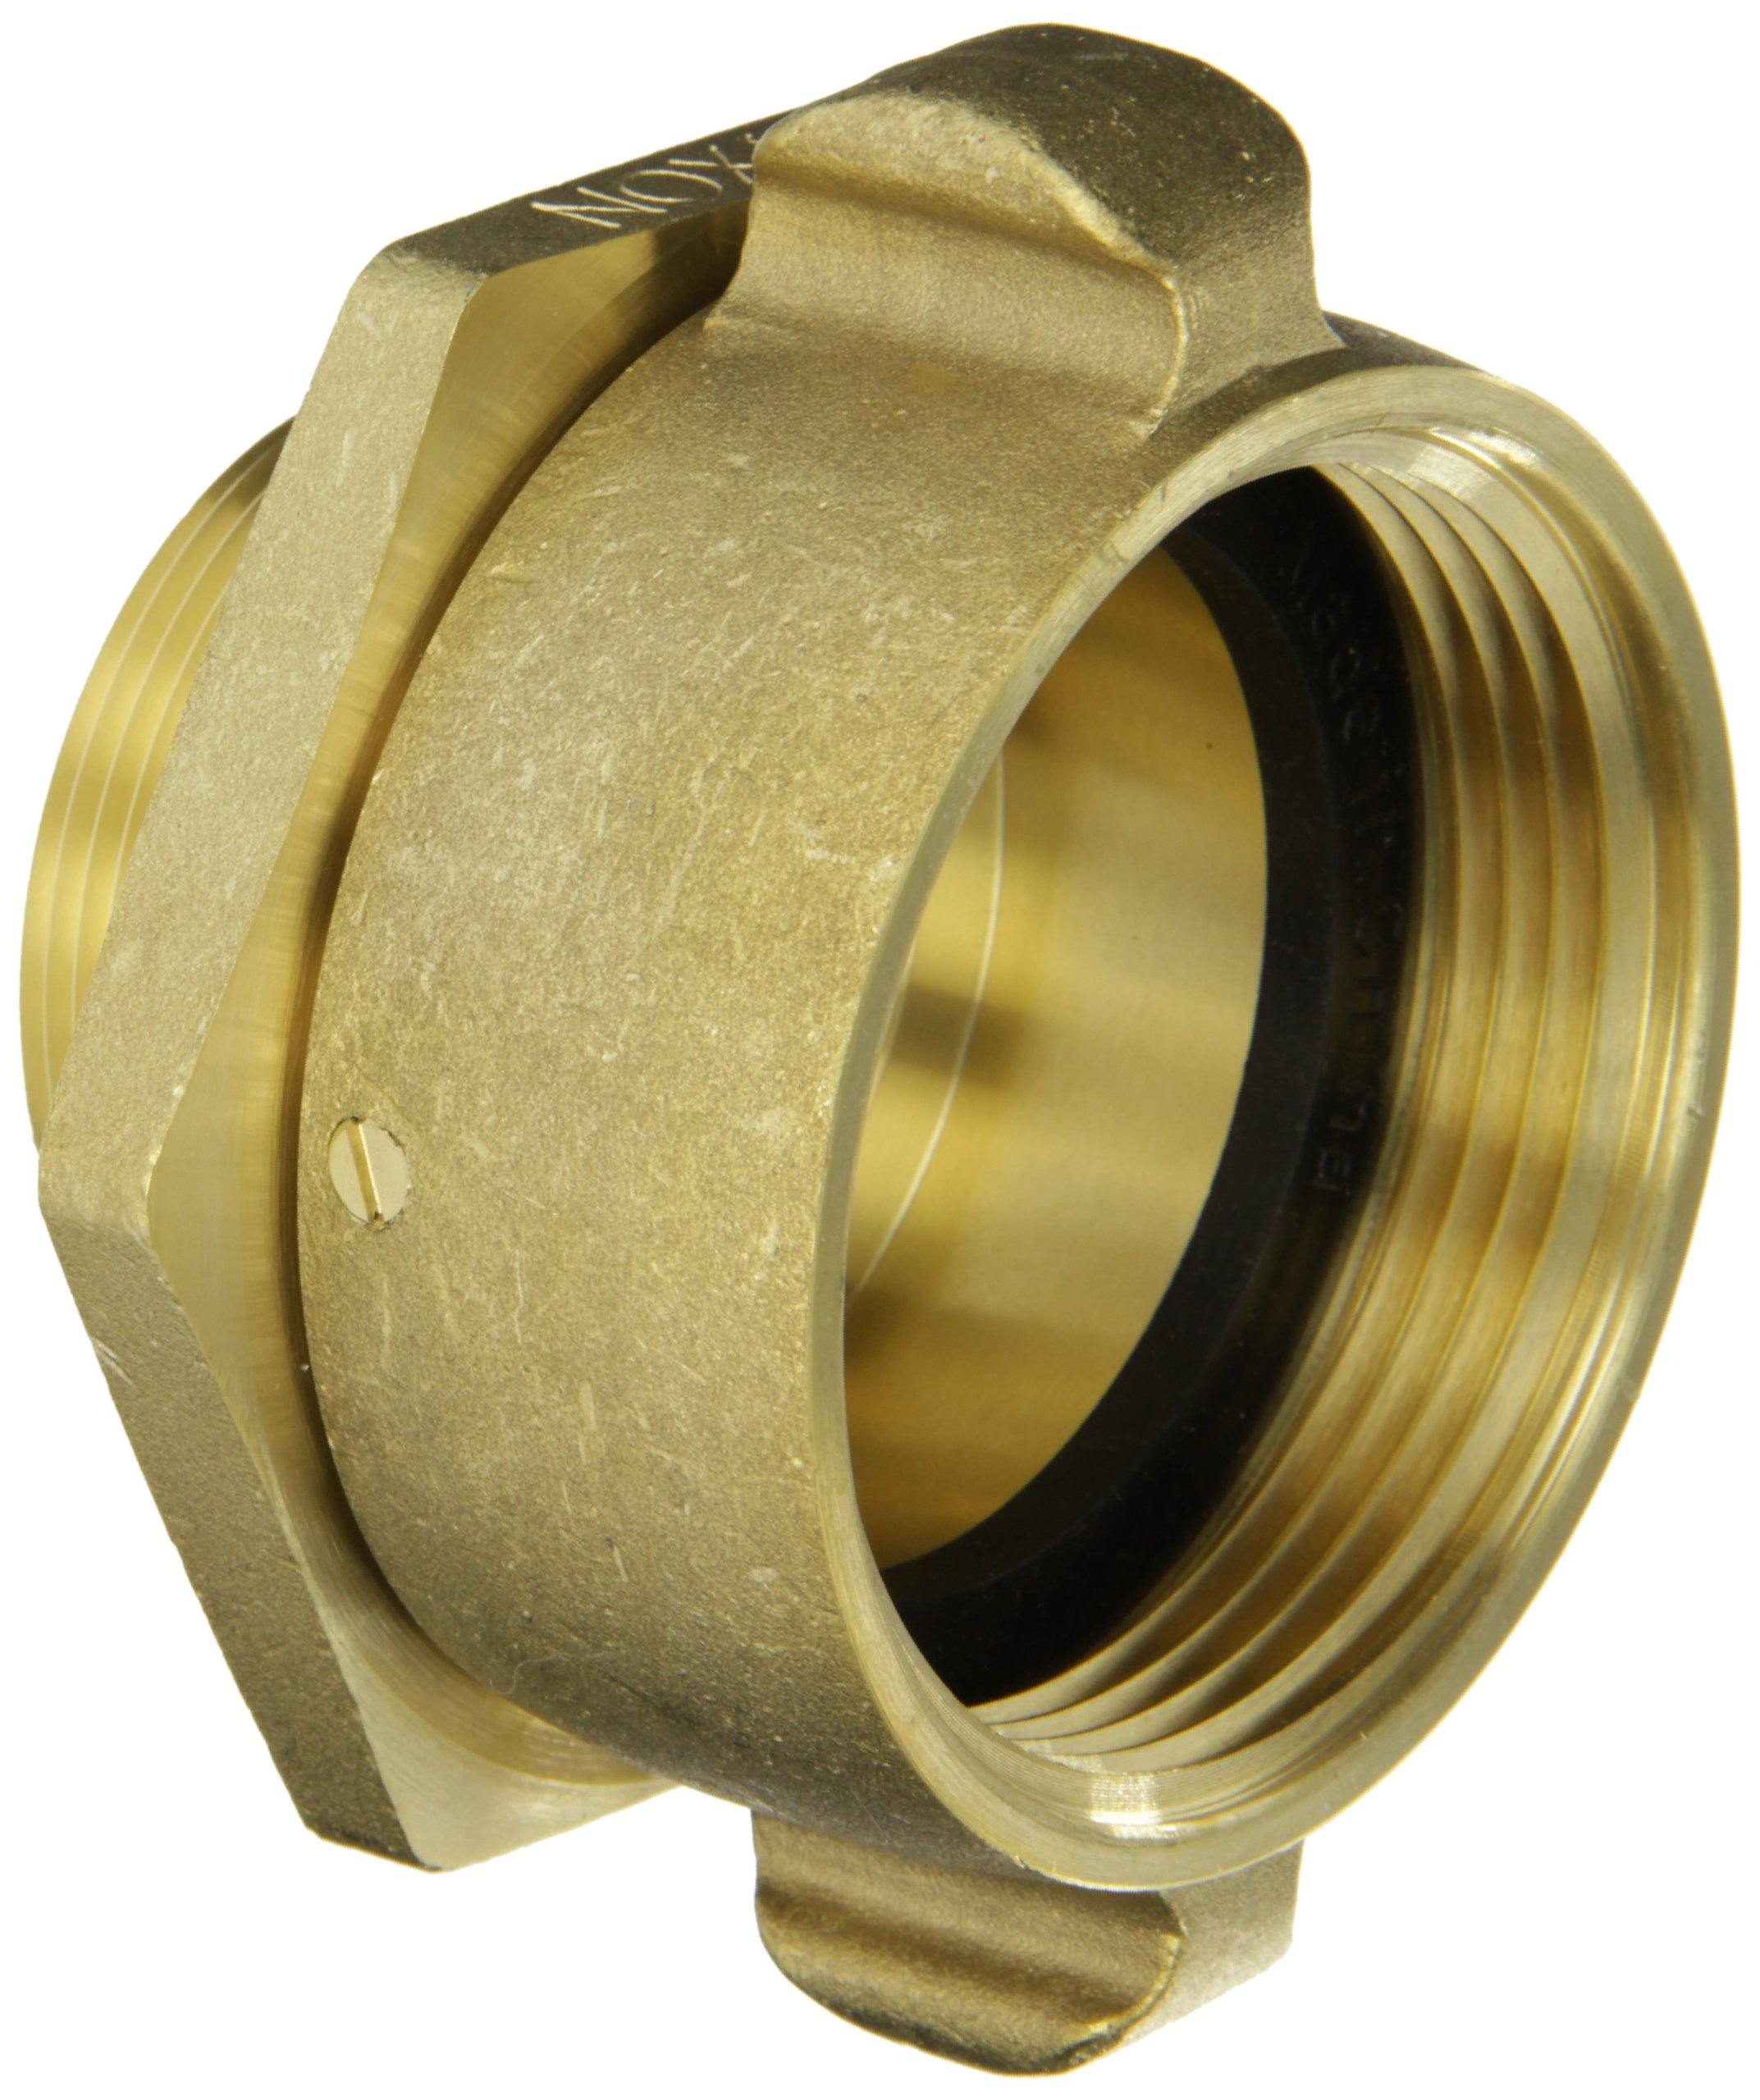 Dixon Valve RSM25F20T Brass Fire Equipment, Swivel Adapter with Rocker Lug, 2-1/2'' NST (NH) Female x 2'' NPT Male